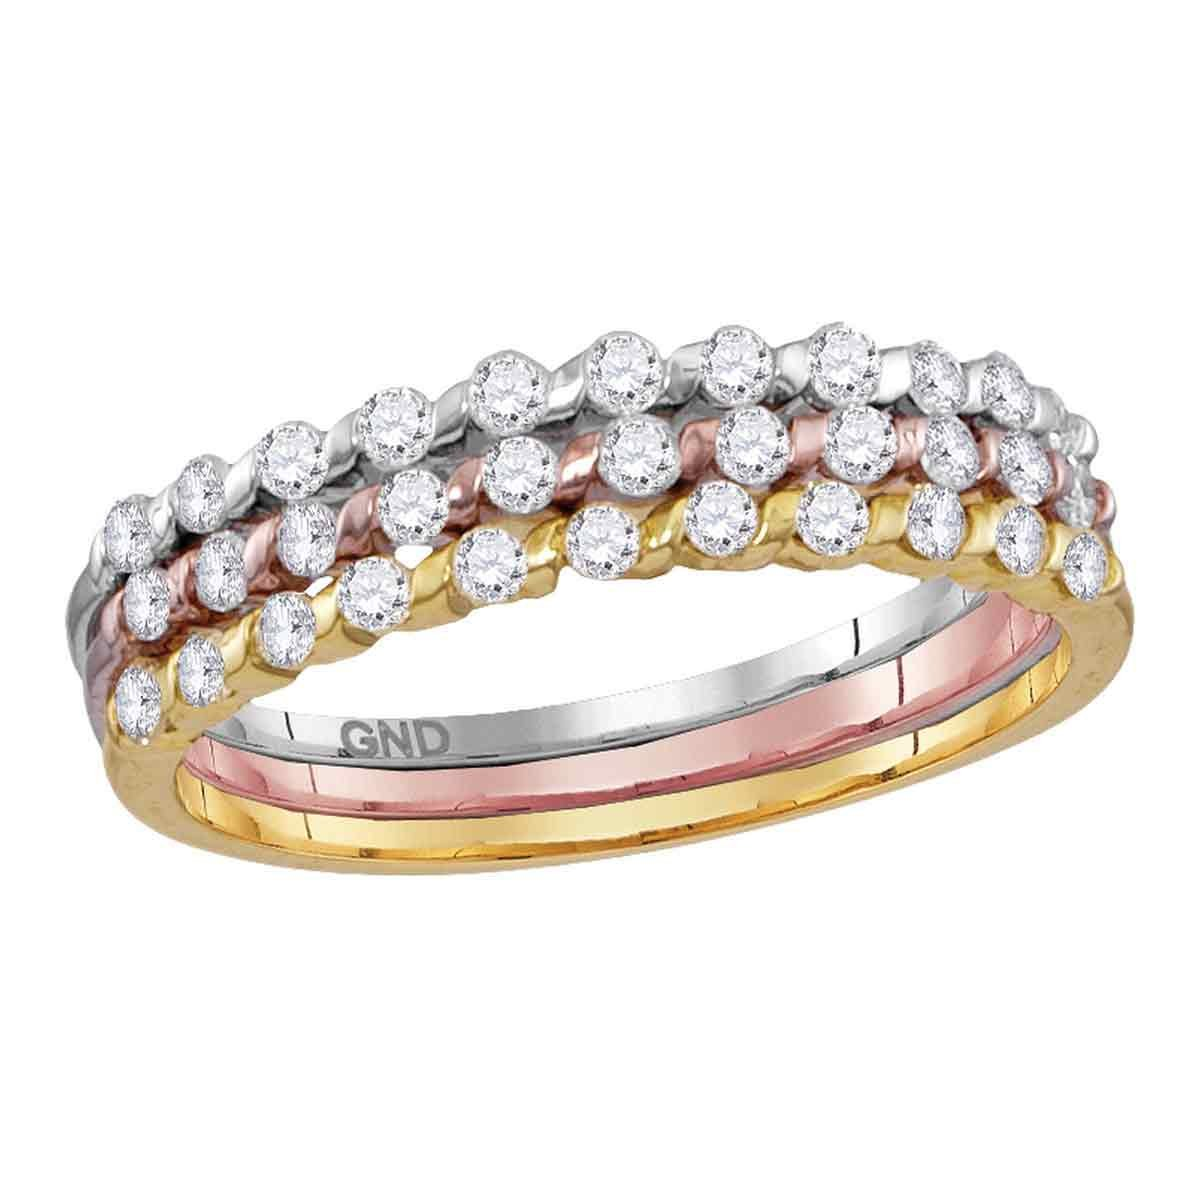 Round Diamond Stackable Rings 10k Yellow White Rose Gold Fashion Bands Three Piece Tri Color 1/2 ctw